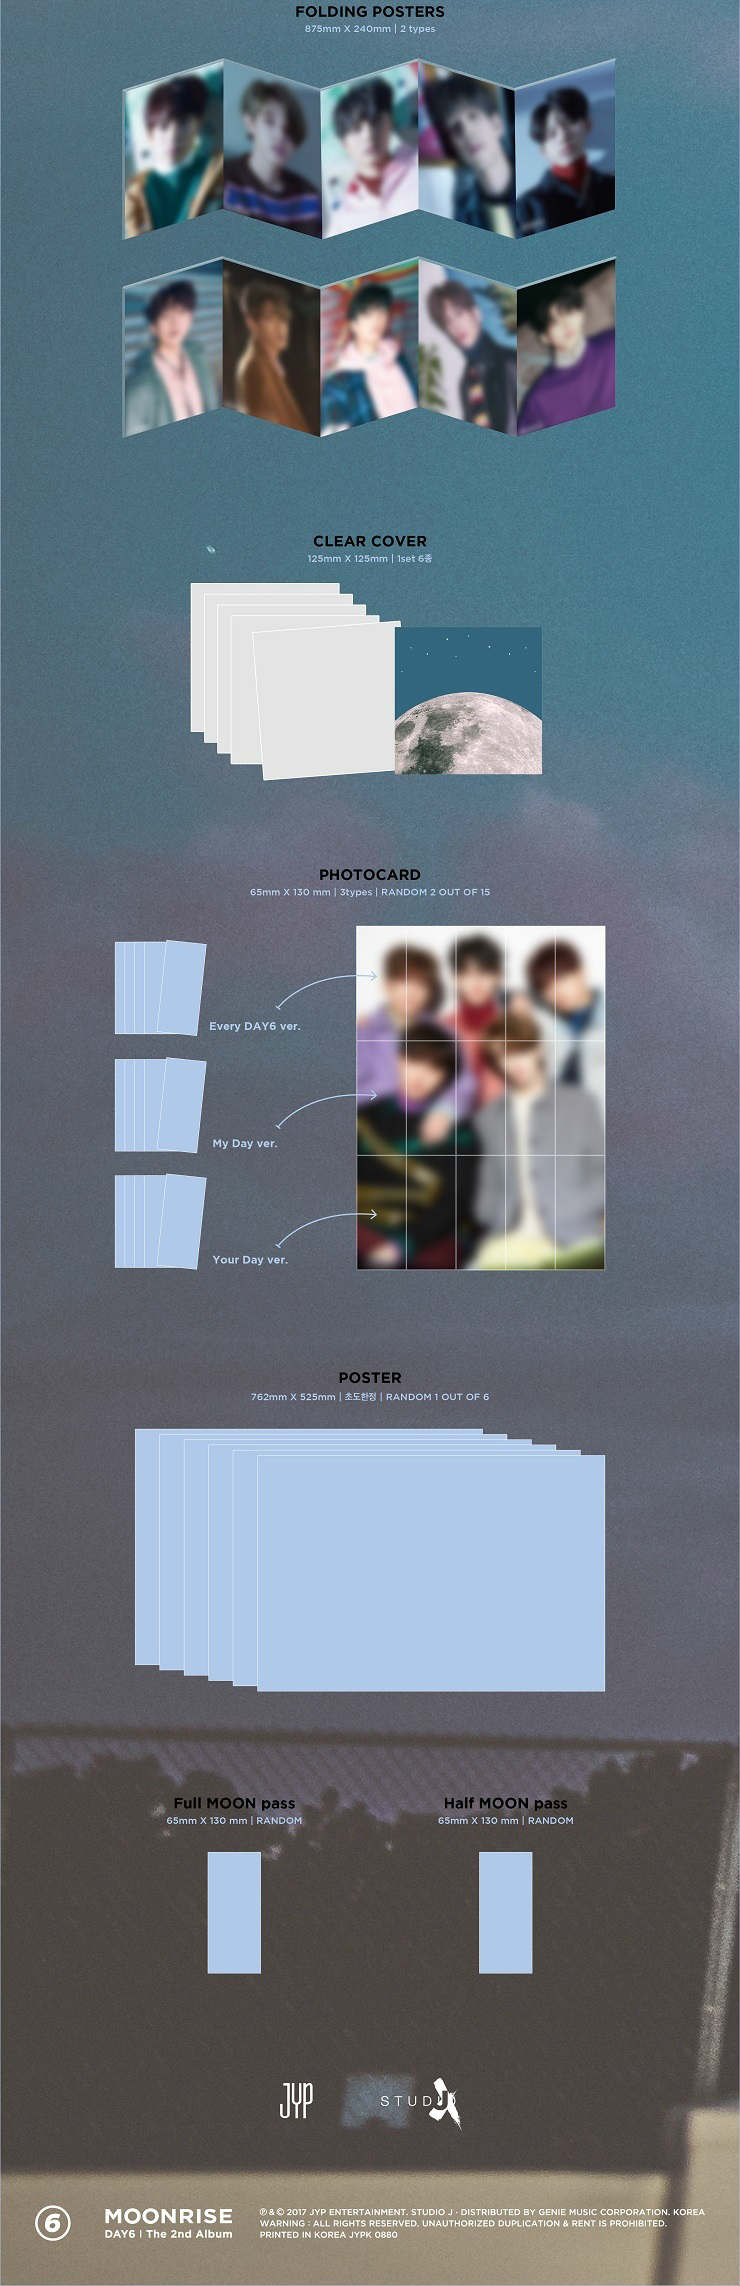 day6 moonrise contents2